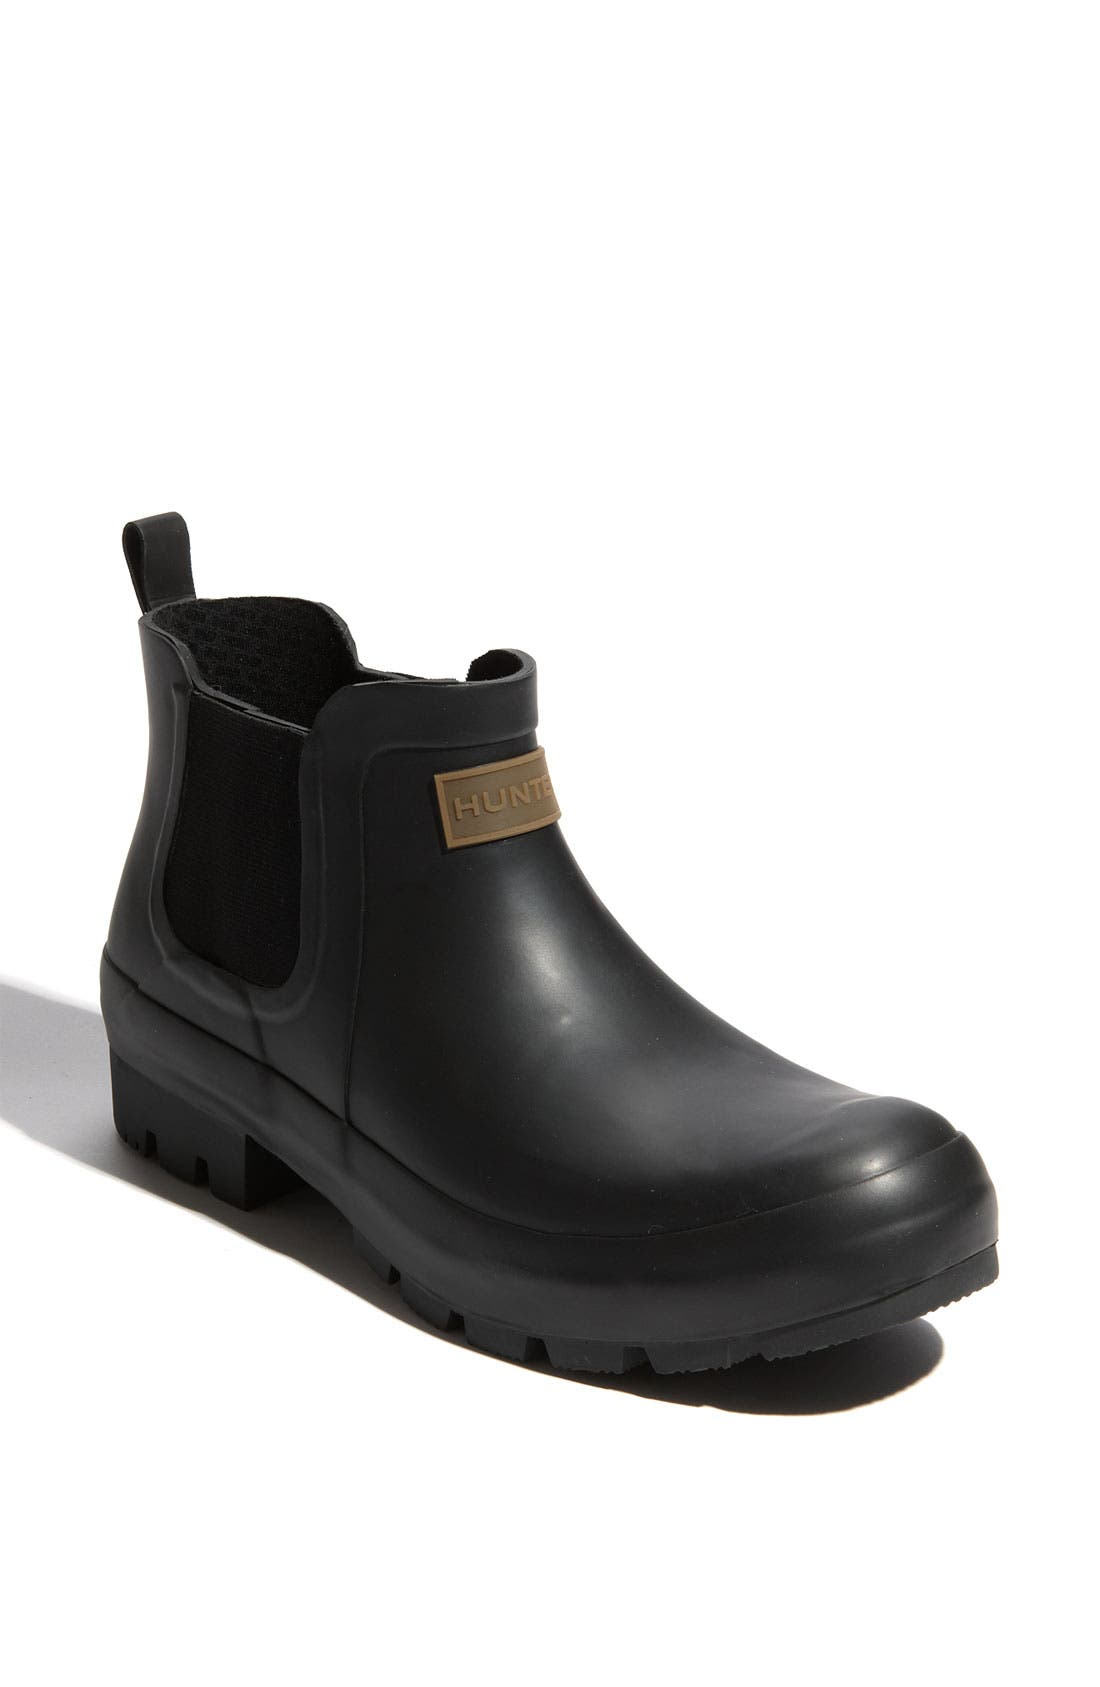 Alternate Image 1 Selected - Hunter 'Andrew' Rain Boot (Men) (Online Only)